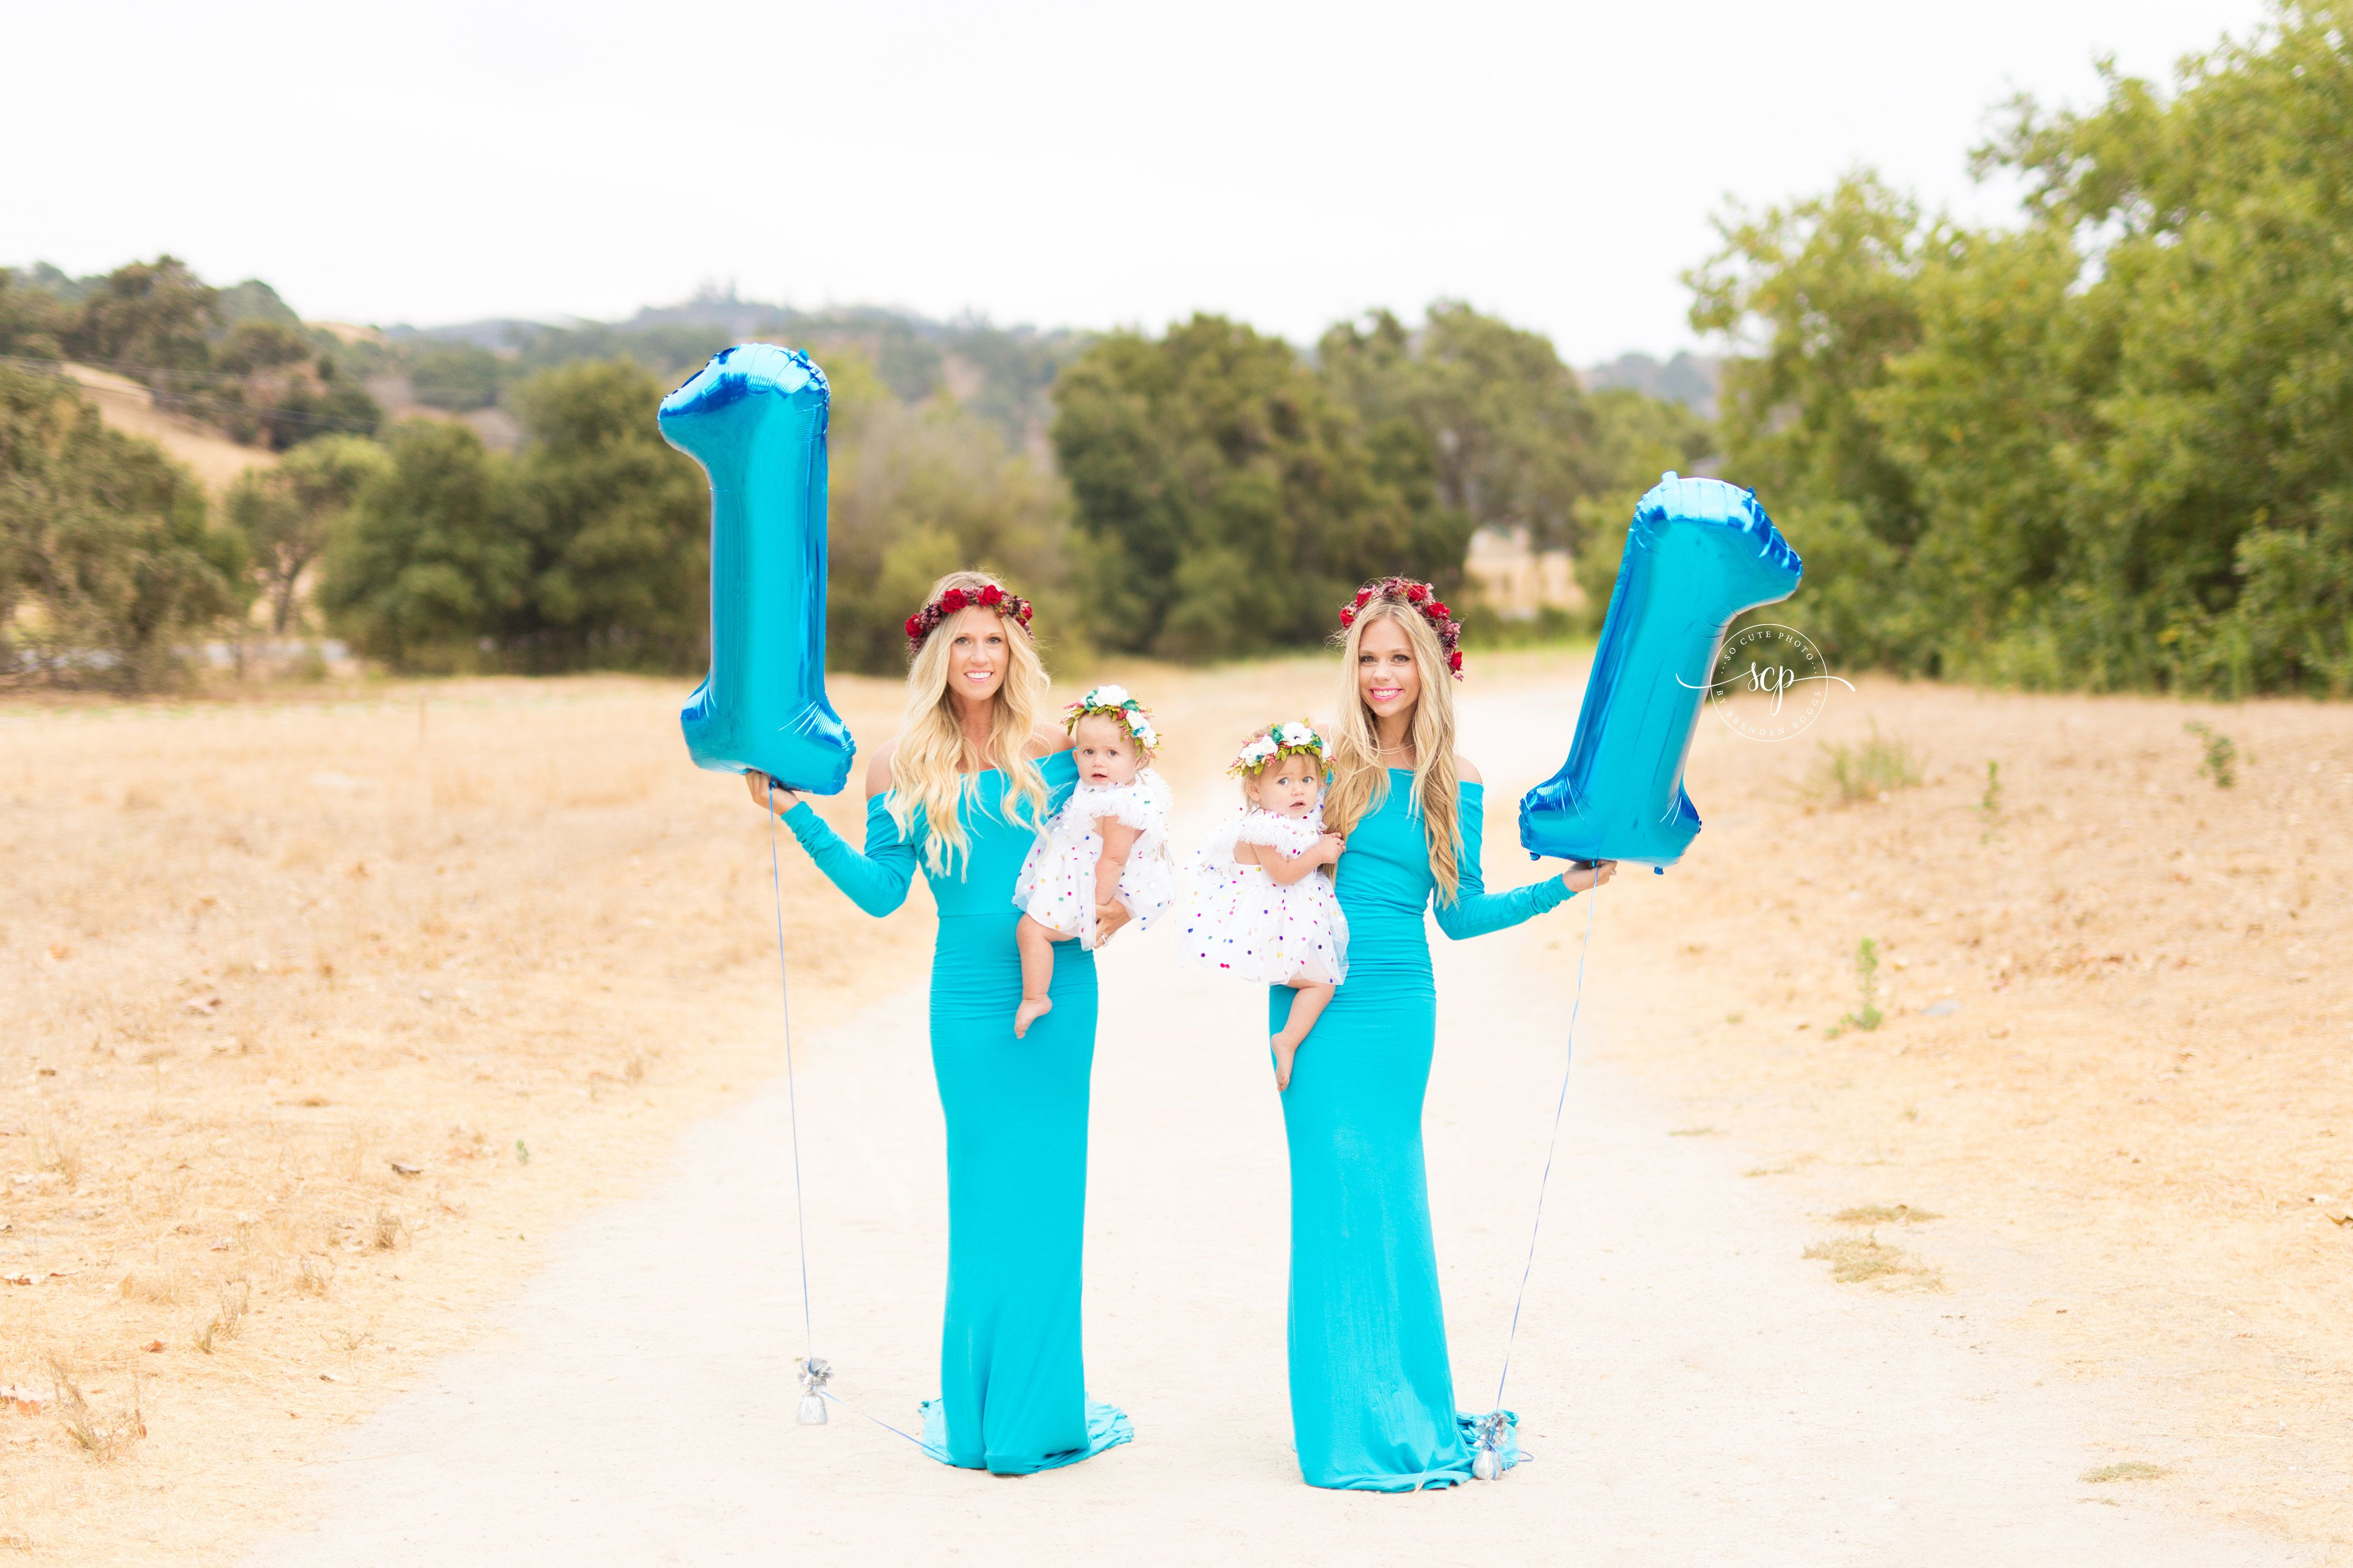 To celebrate the babies' first birthdays, the siblings recreated their maternity photo and included their newest additions.&n